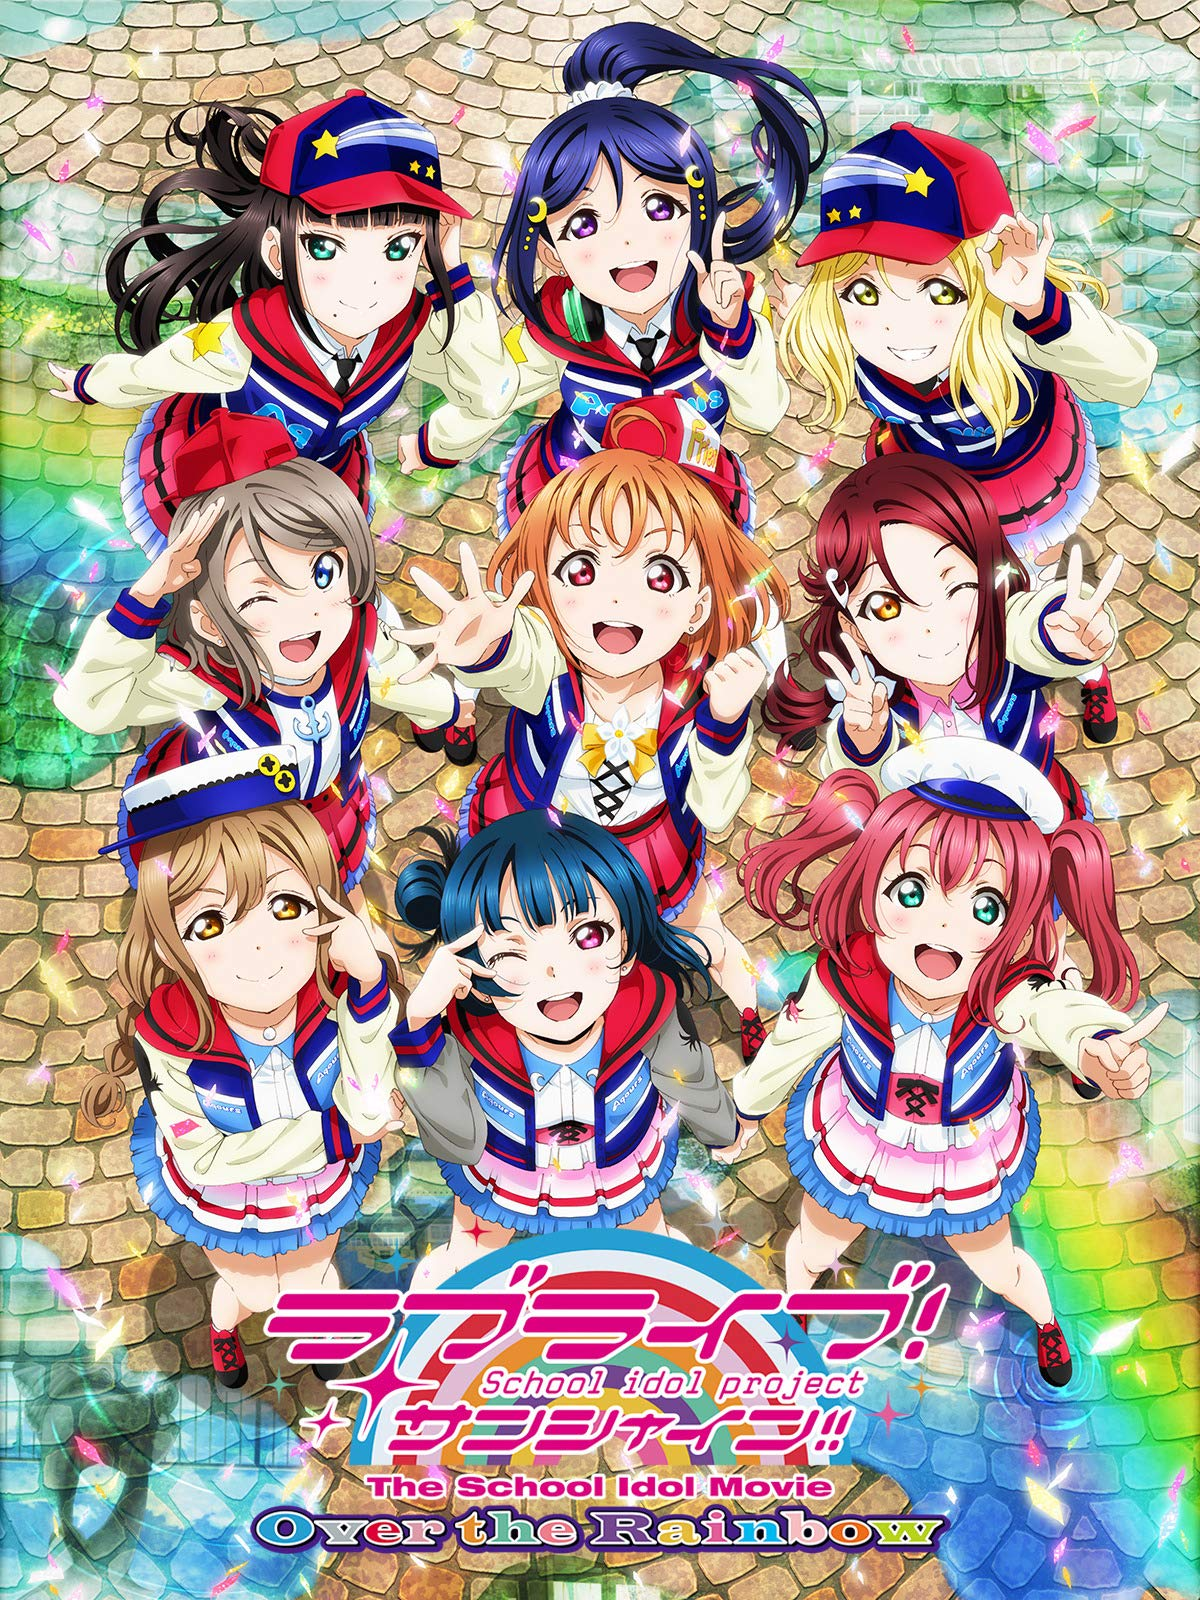 Amazon Co Jp ラブライブ サンシャイン The School Idol Movie Over